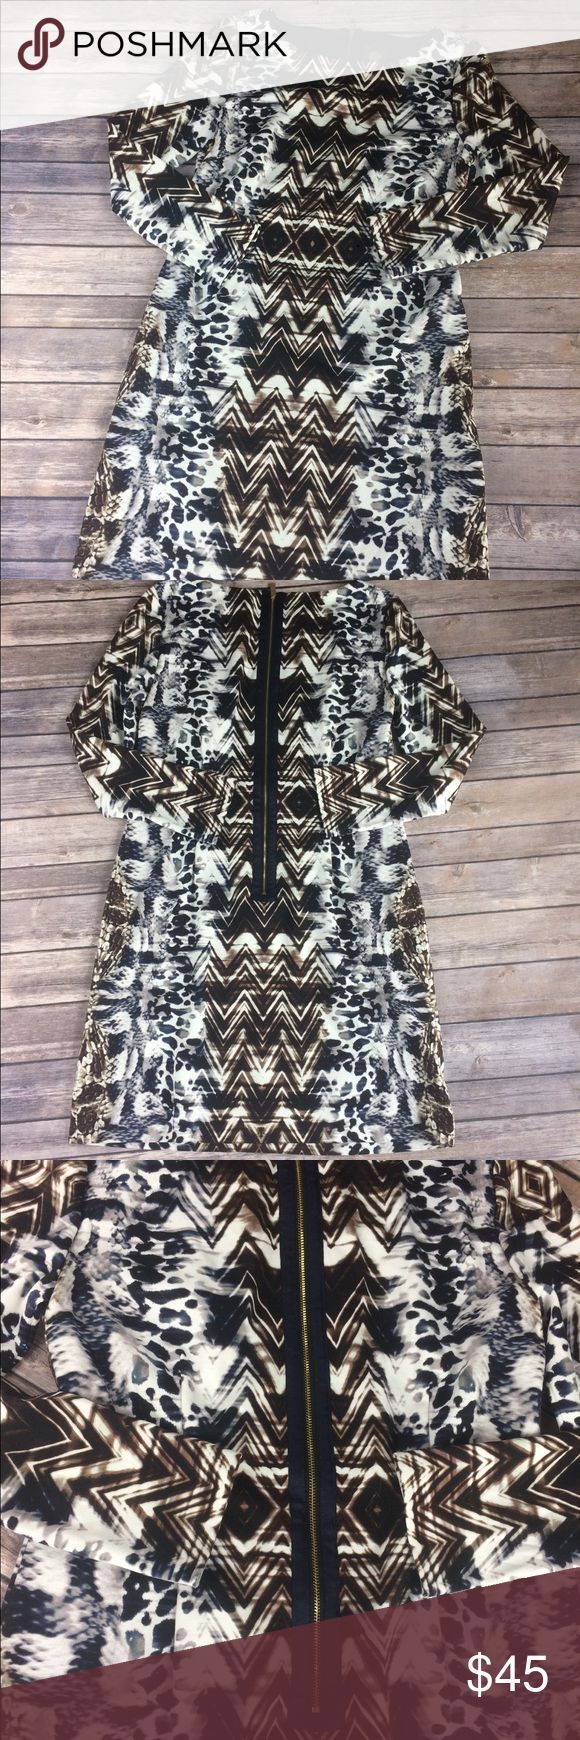 """Vince Camuto Tribal Animal Print Long Sleeve Dress Vince Camuto Tribal Animal Print Long Sleeve Dress With Brown, Blue, Gray. Very Chic!  Gently Used Condition. No Flaws or stains. See photos.  Underarm-Underarm: 17' Length:34' Waist:16"""" Inseam: Hips:19"""" All Measurements are Approximate.  Materials:95% Vince Camuto Dresses"""